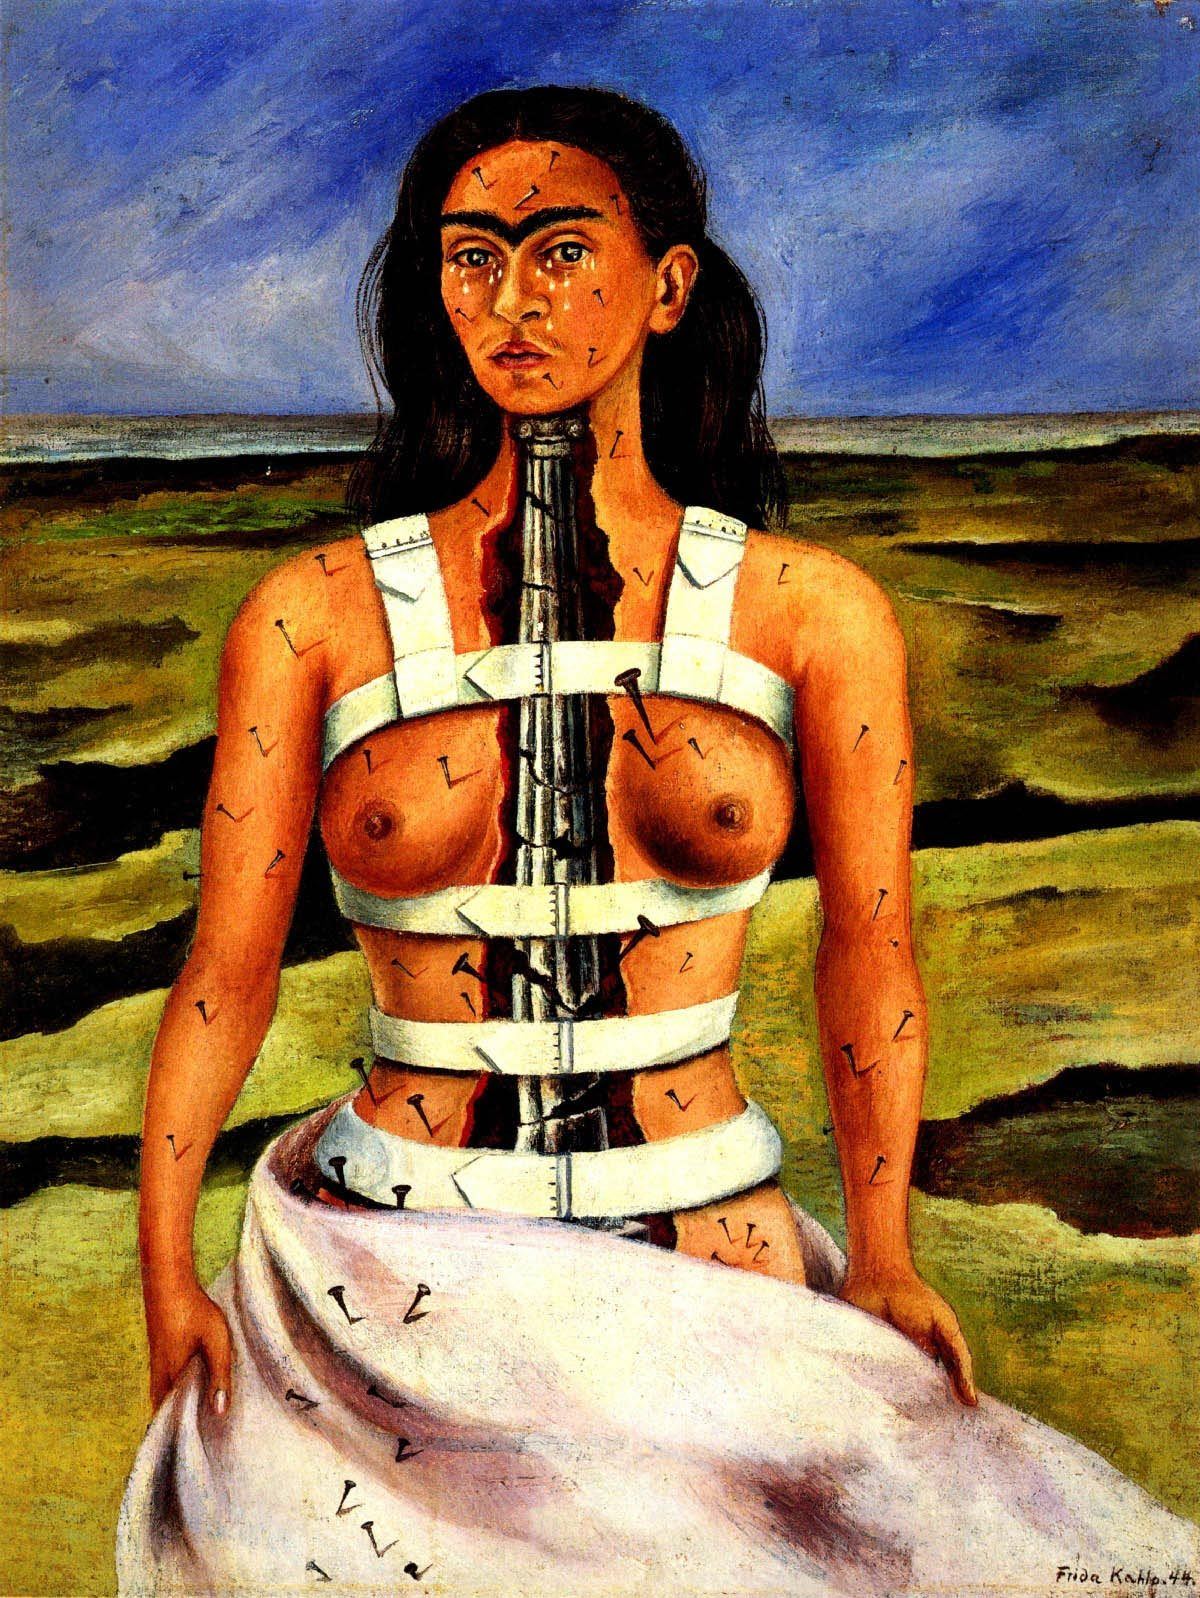 'The Broken Column' by Frida Kahlo, 1944